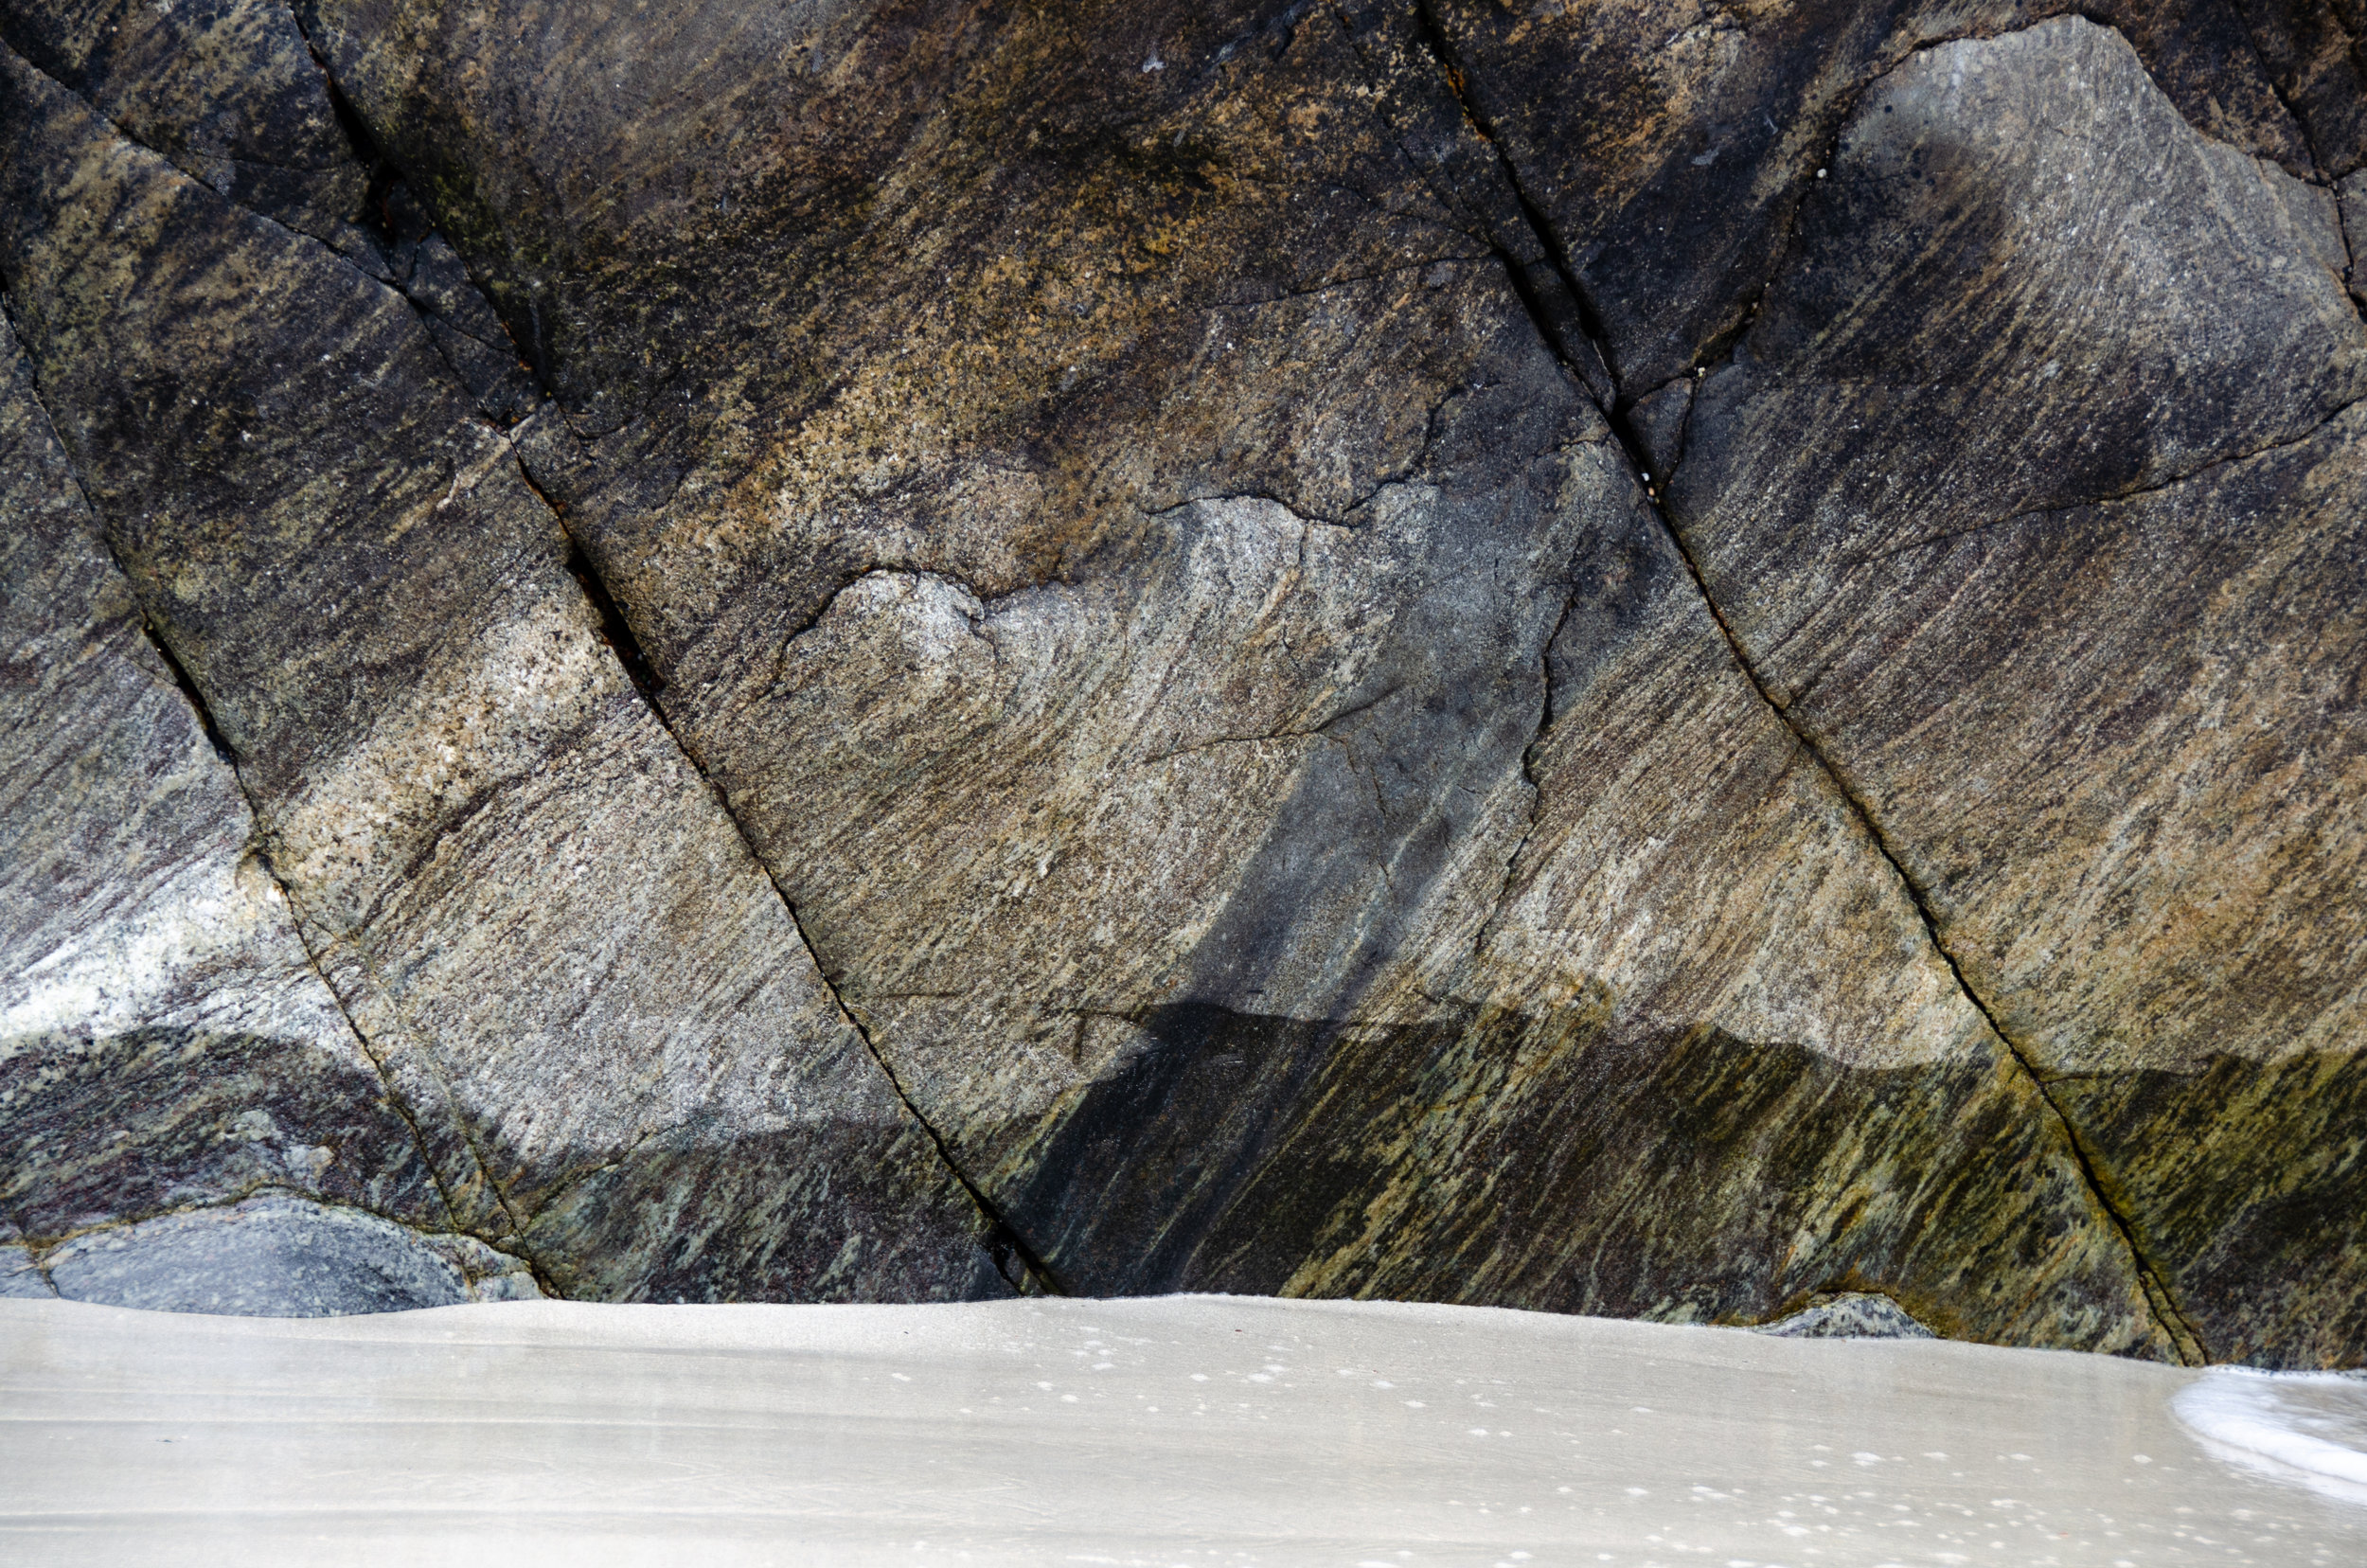 the stark and sharp lines of Gneiss rock slabs